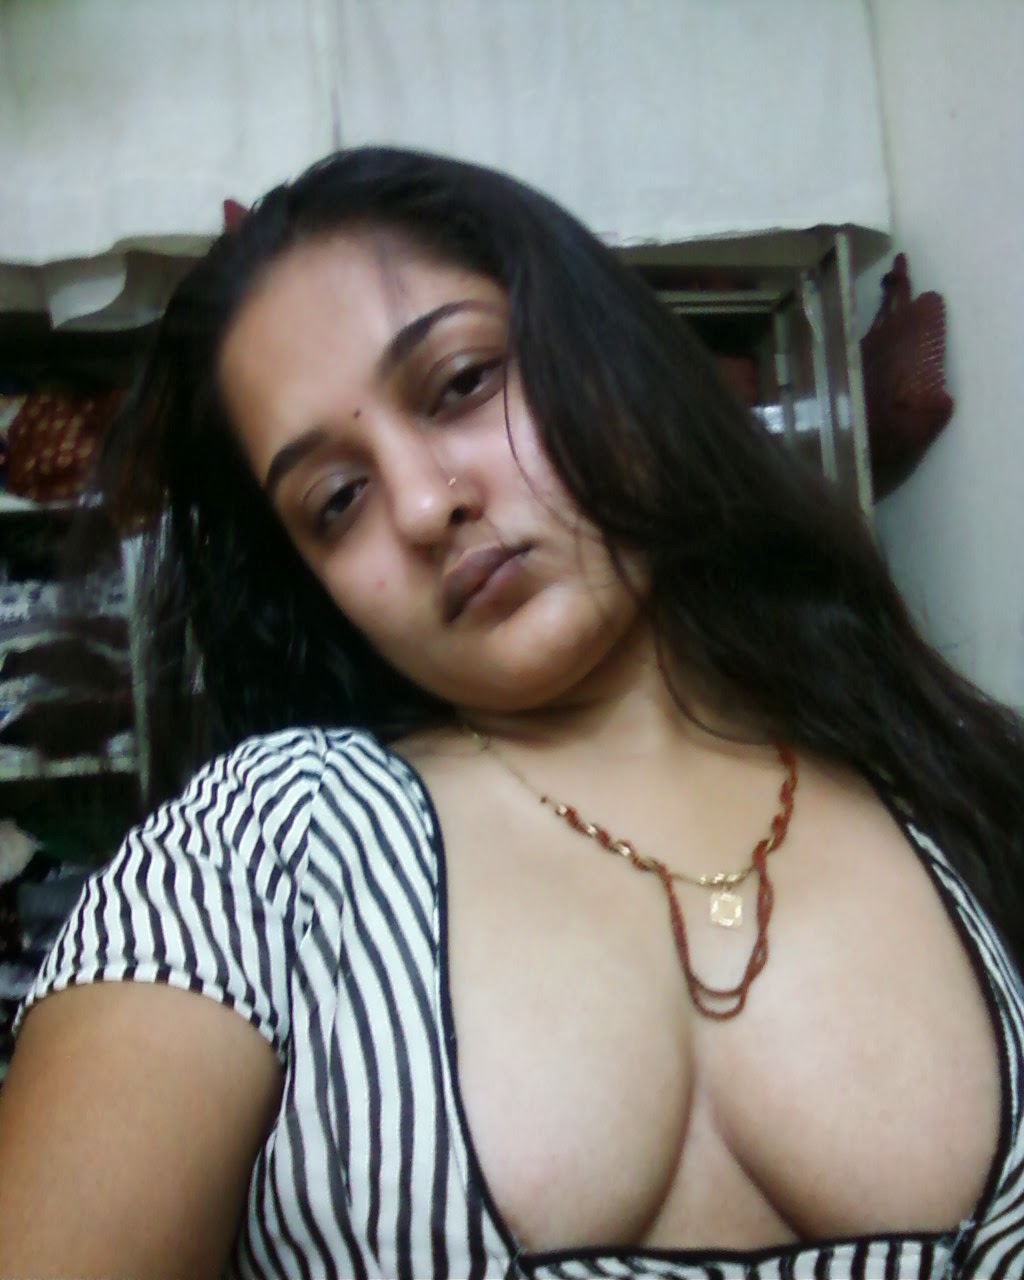 Pity, that Hot nude indian girls big boobs Matures porn the expert